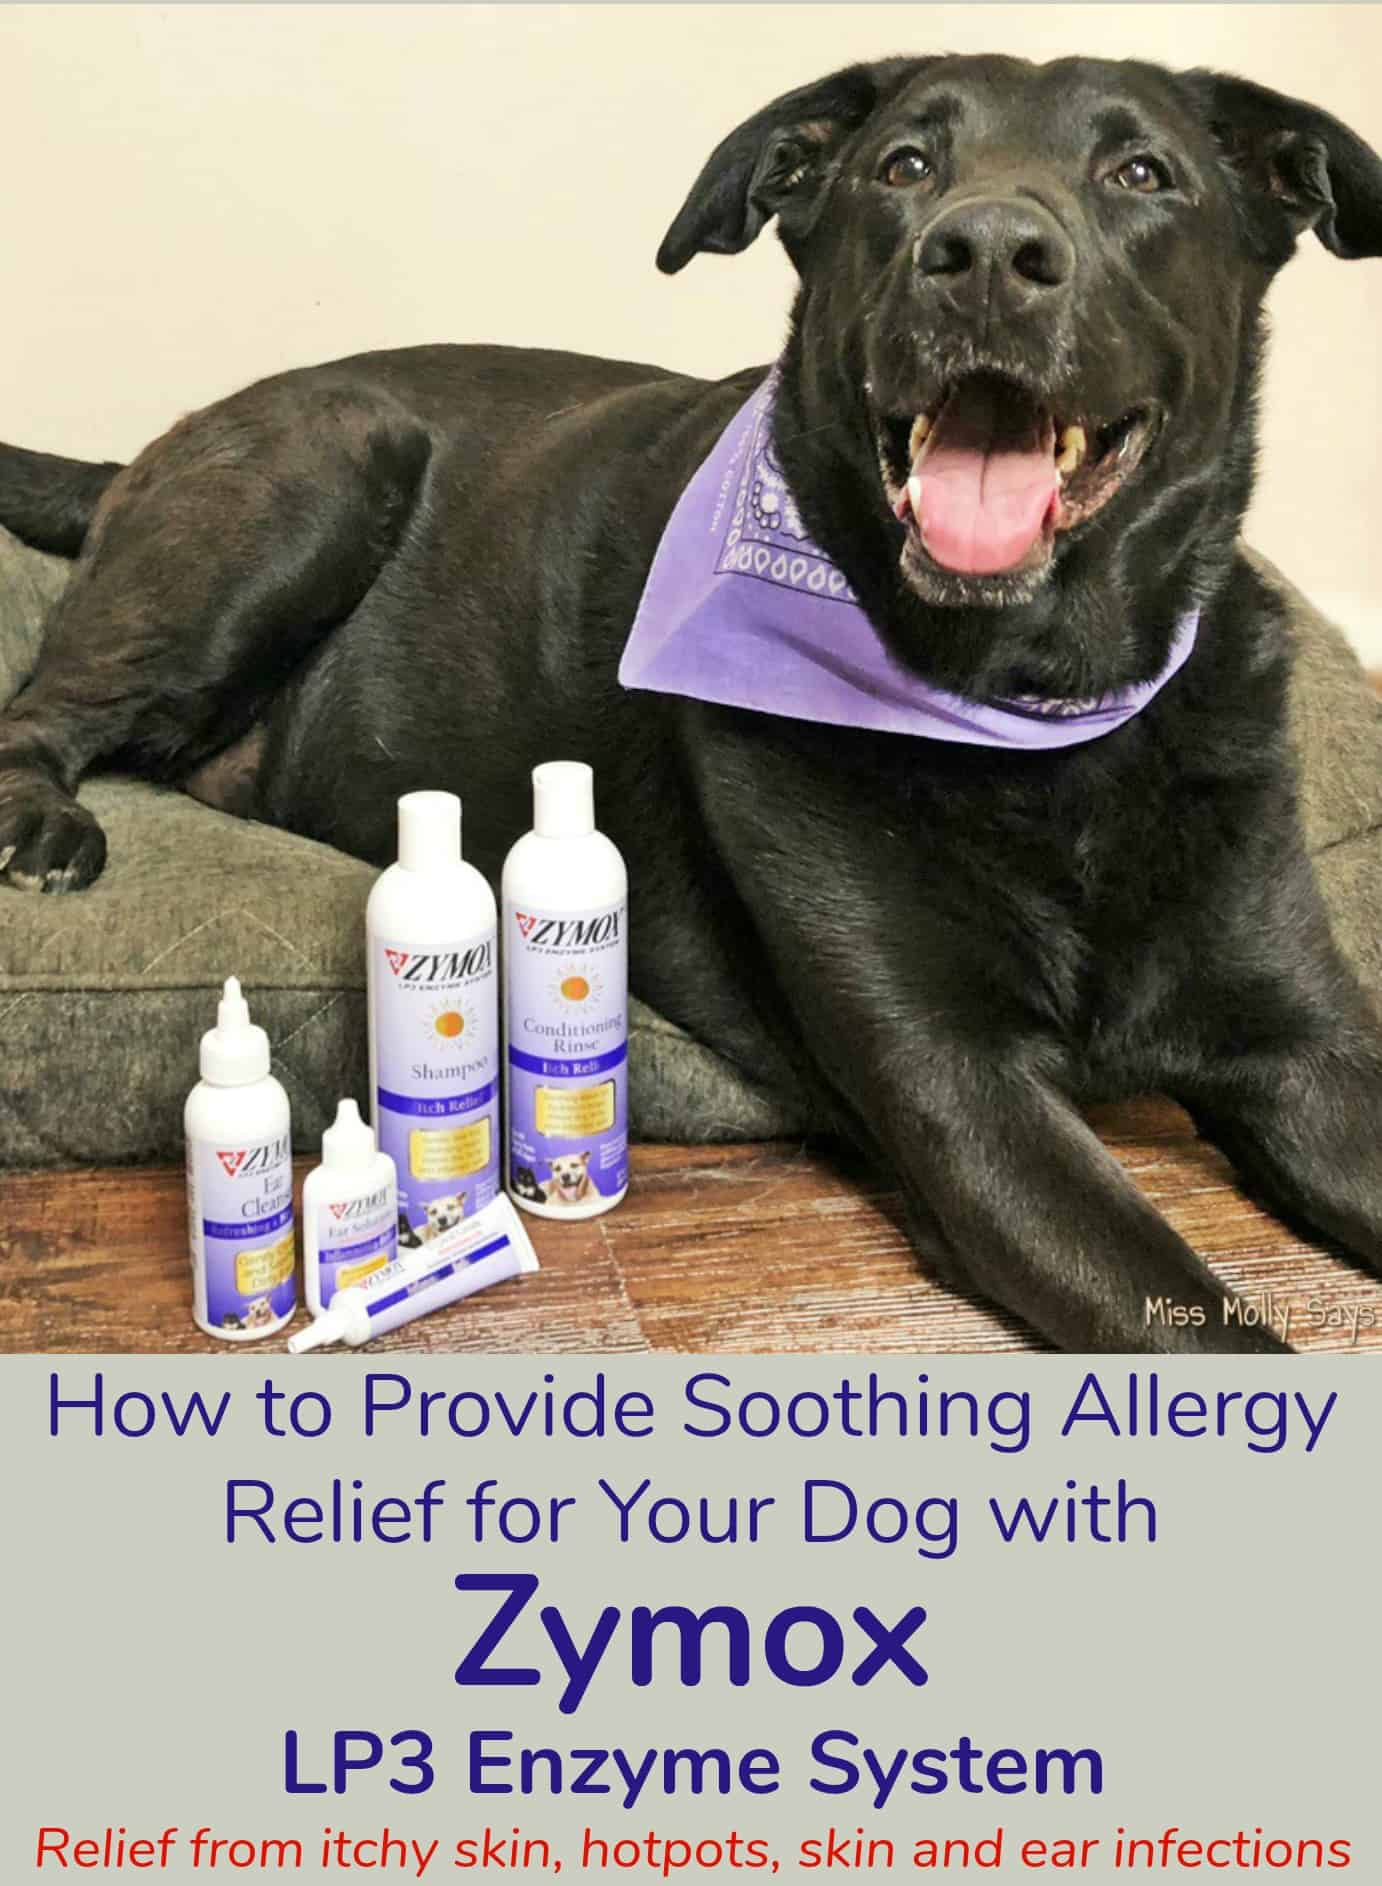 How to Provide Soothing Allergy Relief for Your Dog with Zymox